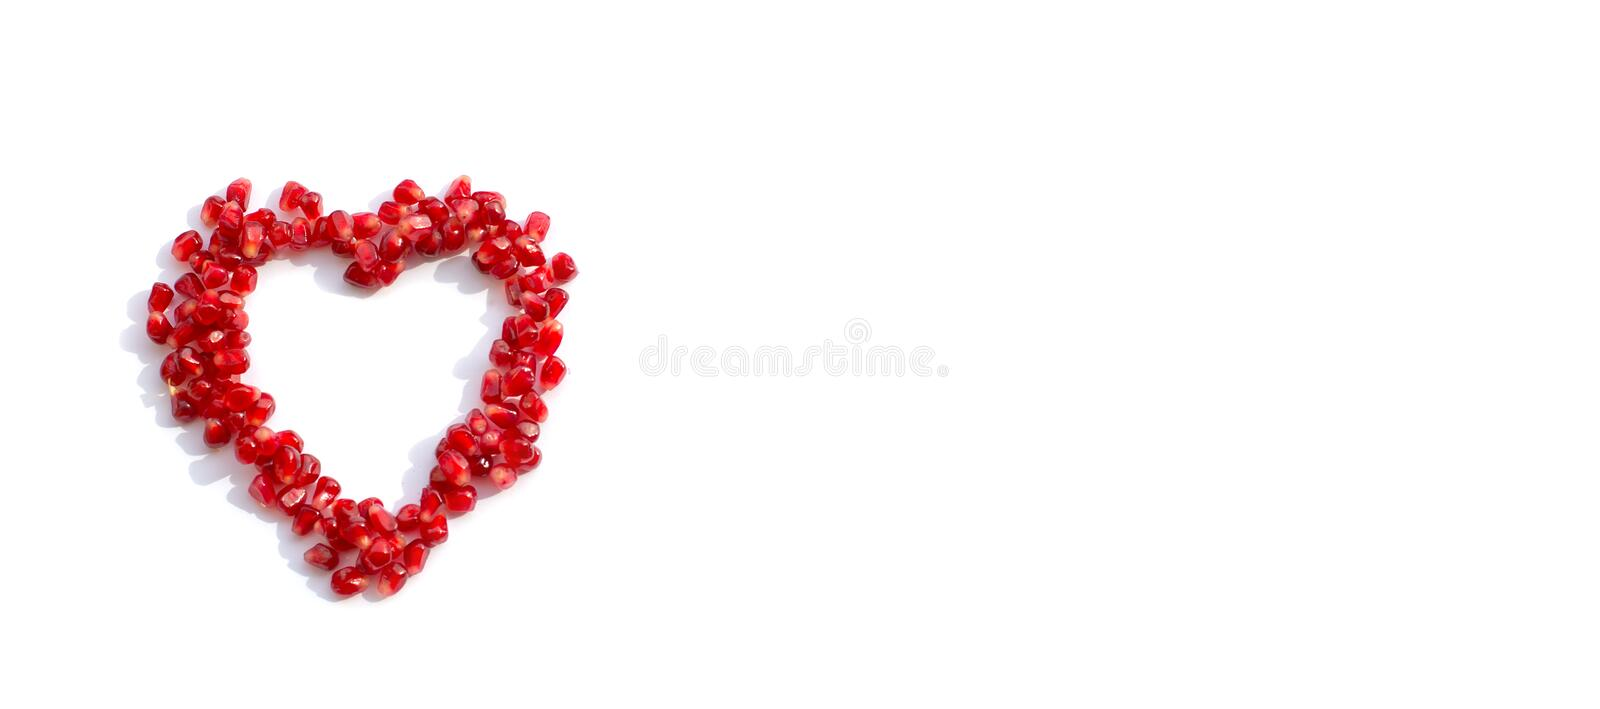 Pomegranate seeds scattered in the shape of a heart royalty free stock photos